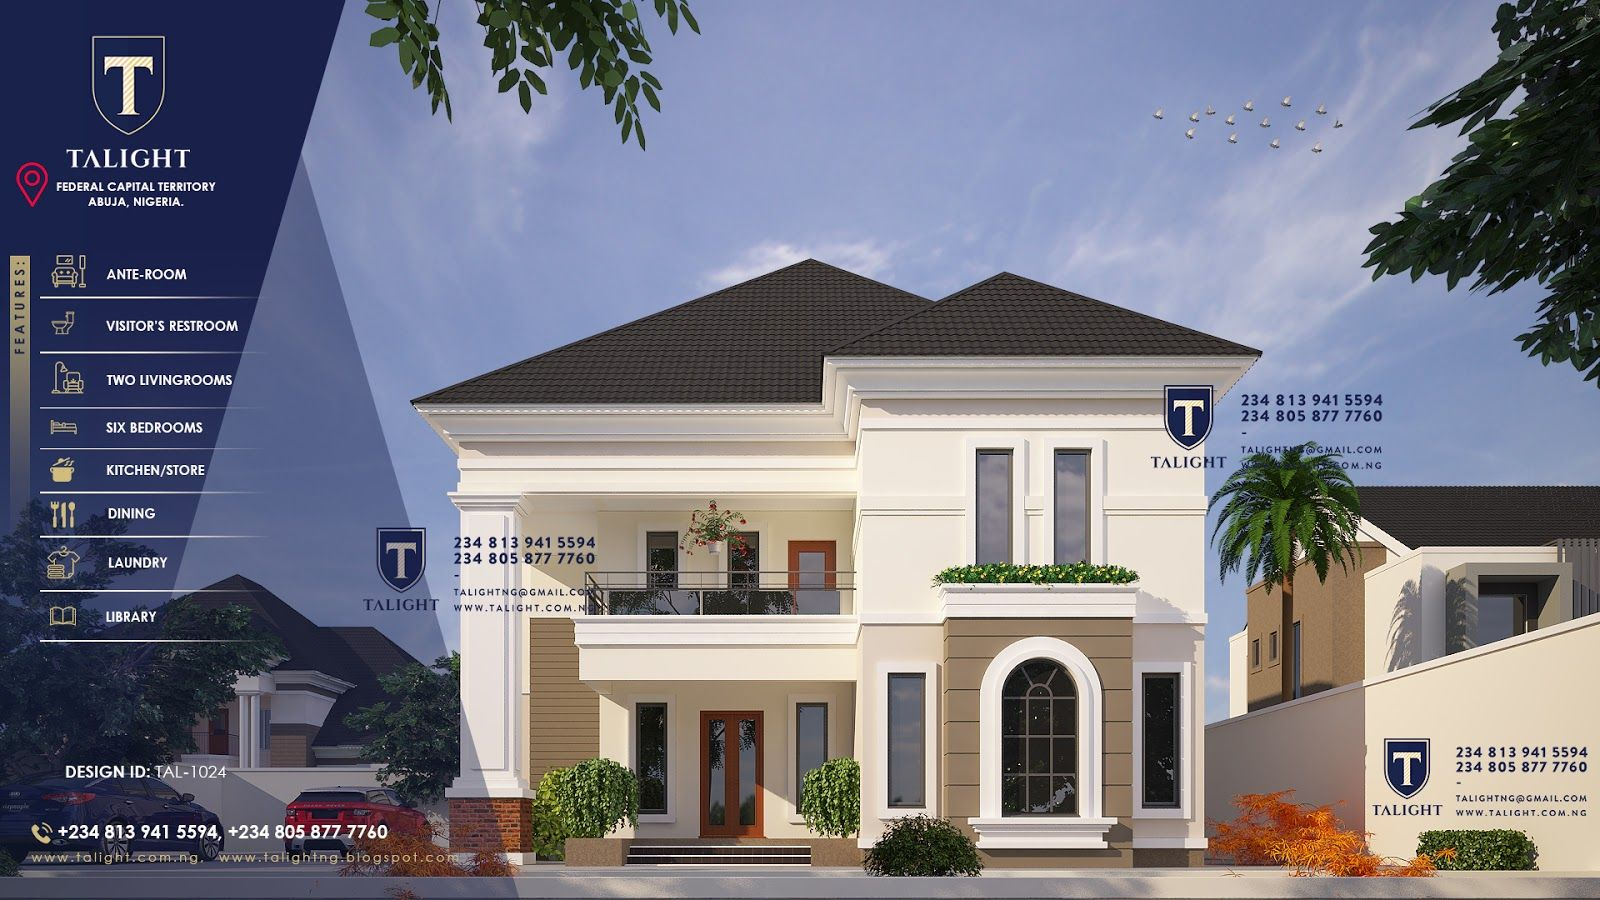 TALIGHTNG Architectural Design Of Six Bedroom Duplex Plan